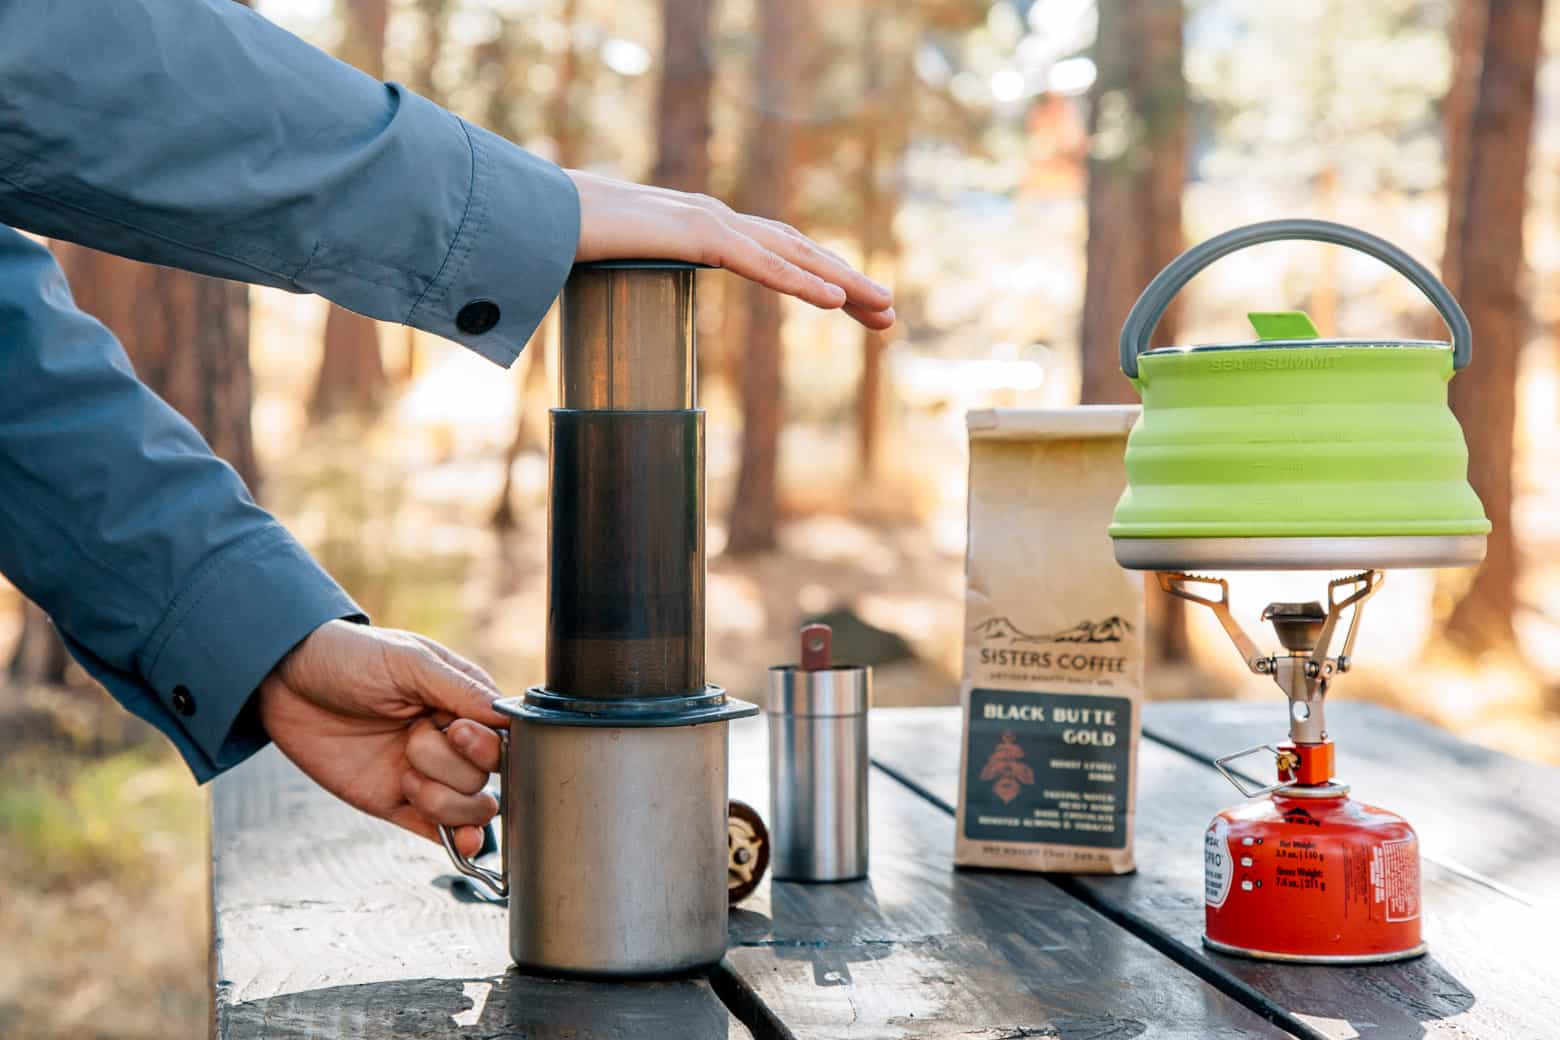 The easiest way to enjoy an incredible cup of coffee while on the road, the AeroPress is our go-to camping coffee maker.